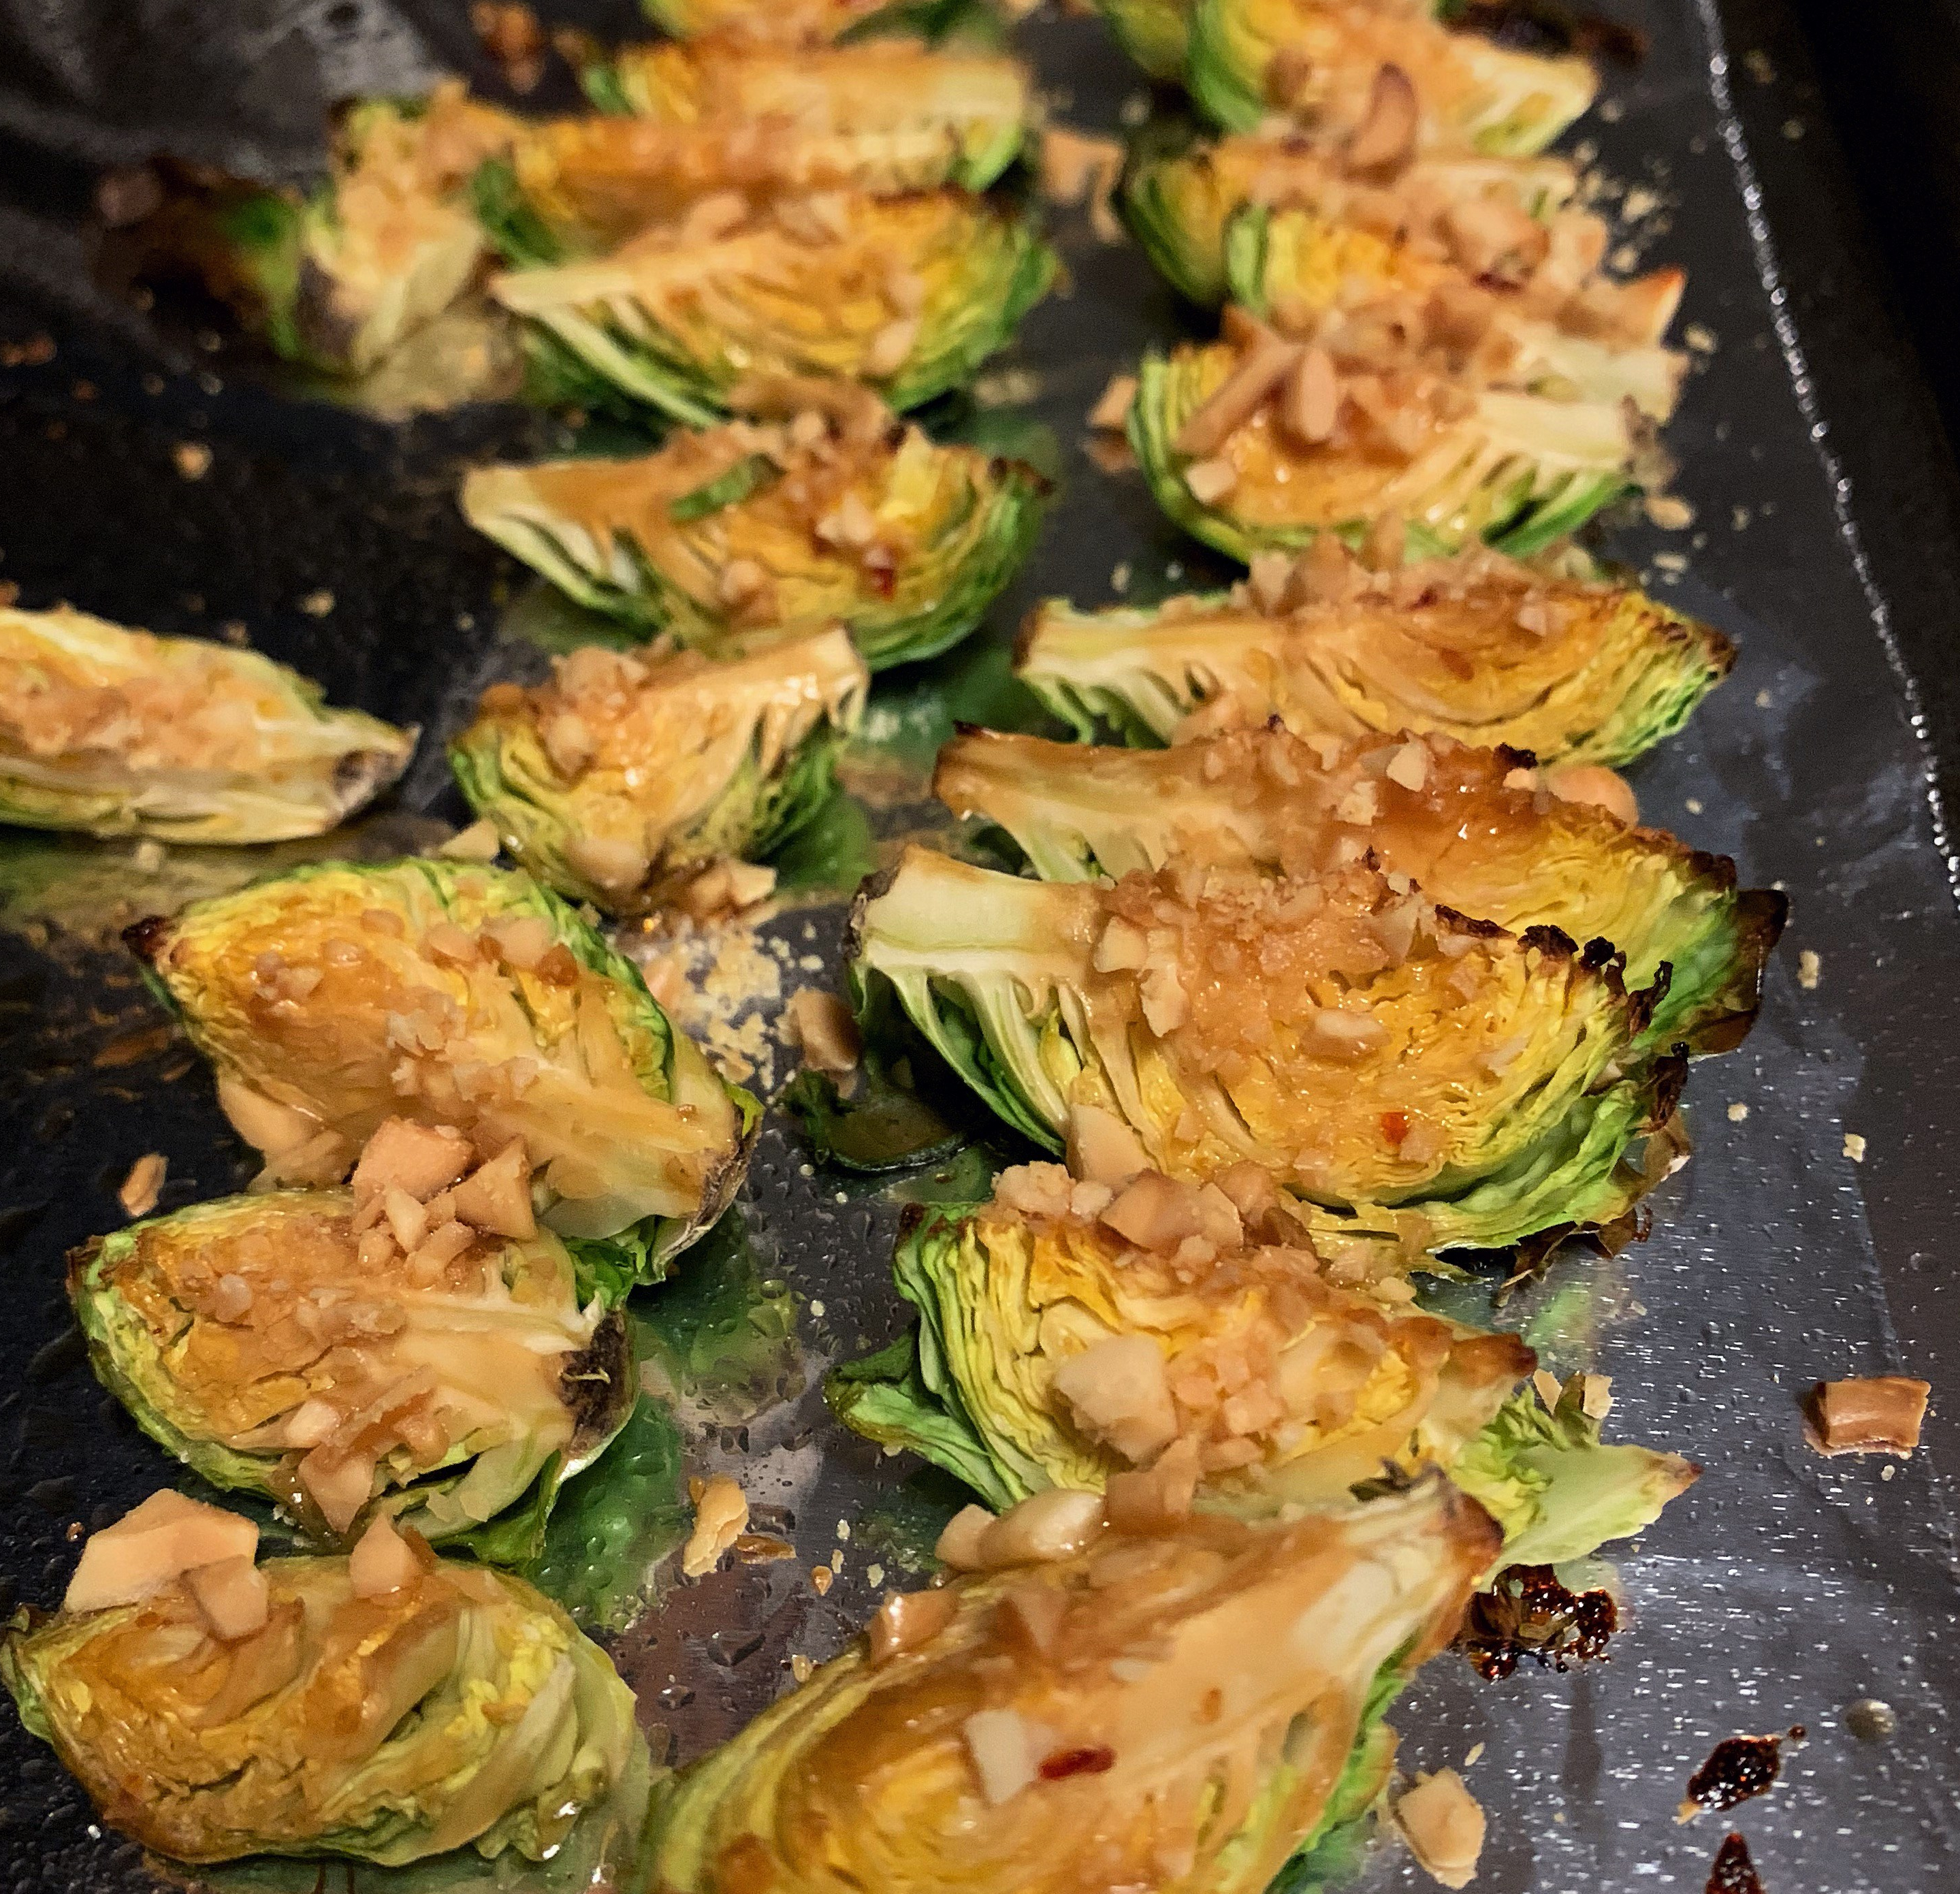 Roasted Brussels sprouts with crushed nuts and General Tso's sauce